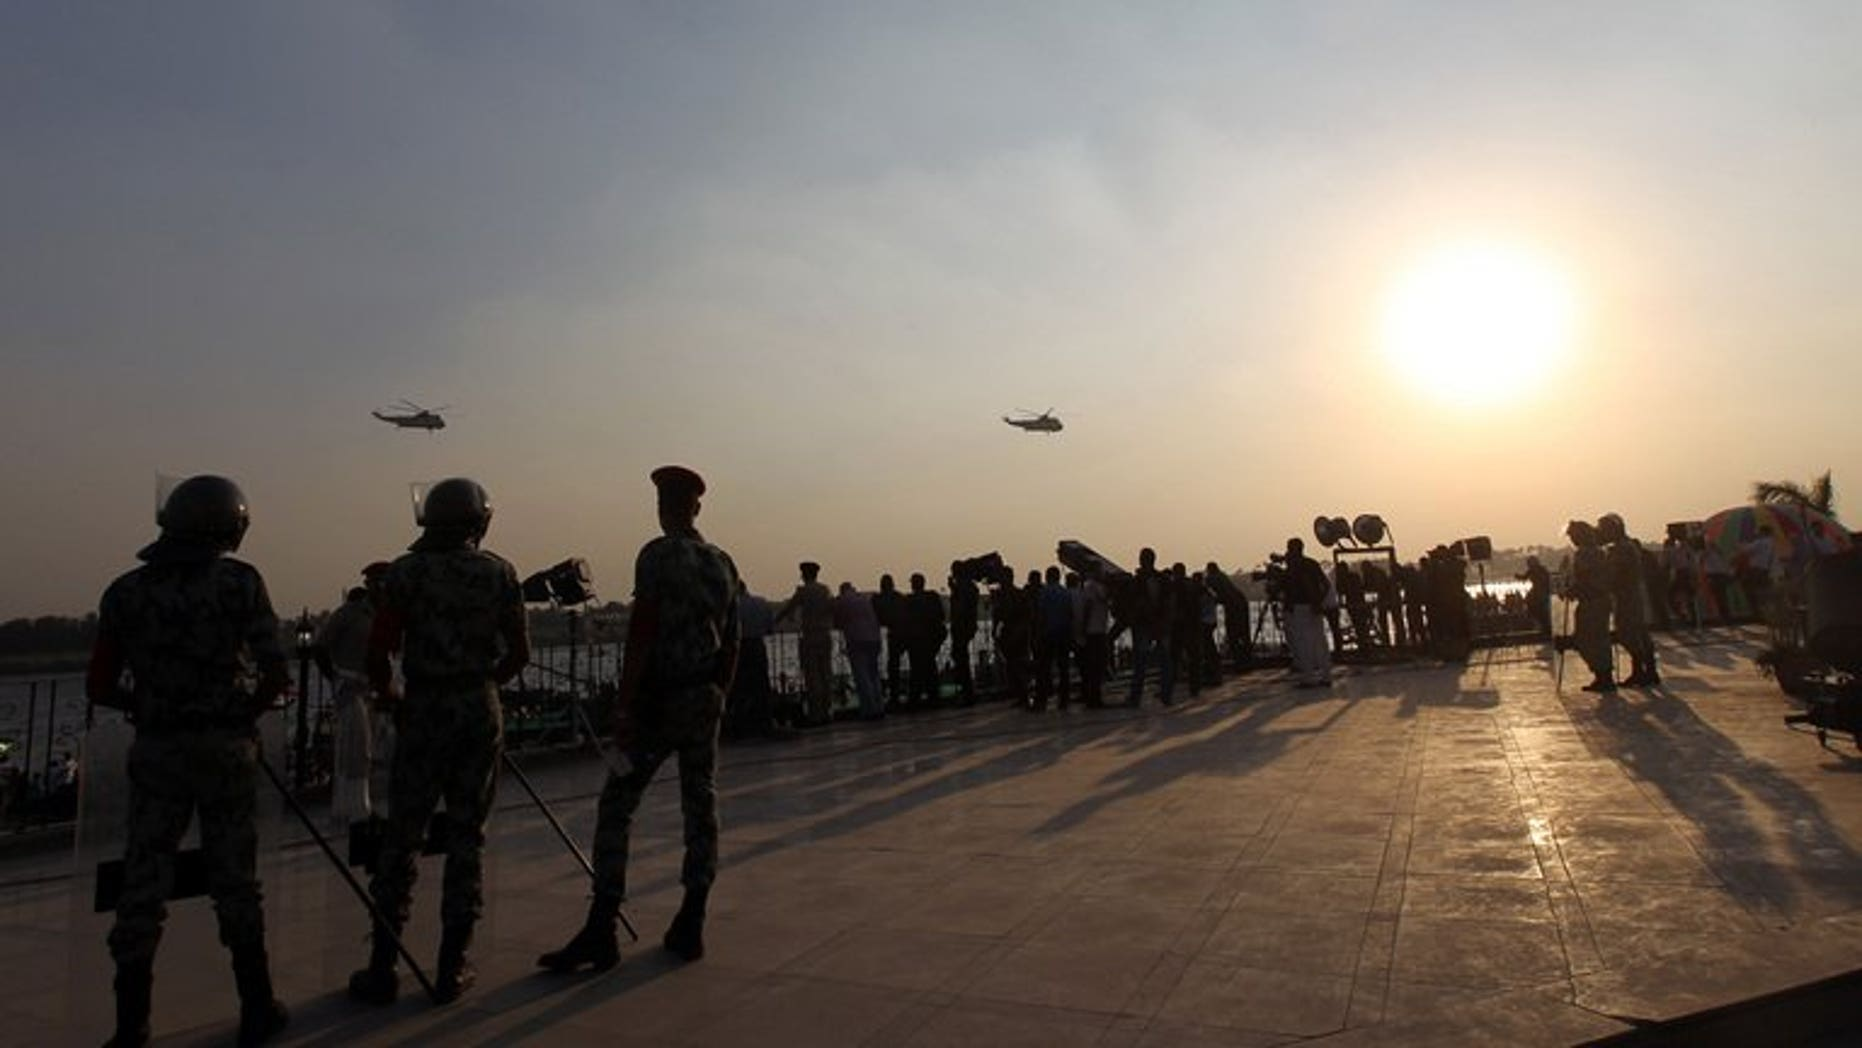 Egyptian soldiers stand guard by the Nile in Cairo, on October 6, 2011. A road accident has killed 15 soldiers and injured another 40 early in Egypt's Nile Delta province of Beheira, a security source tells AFP.